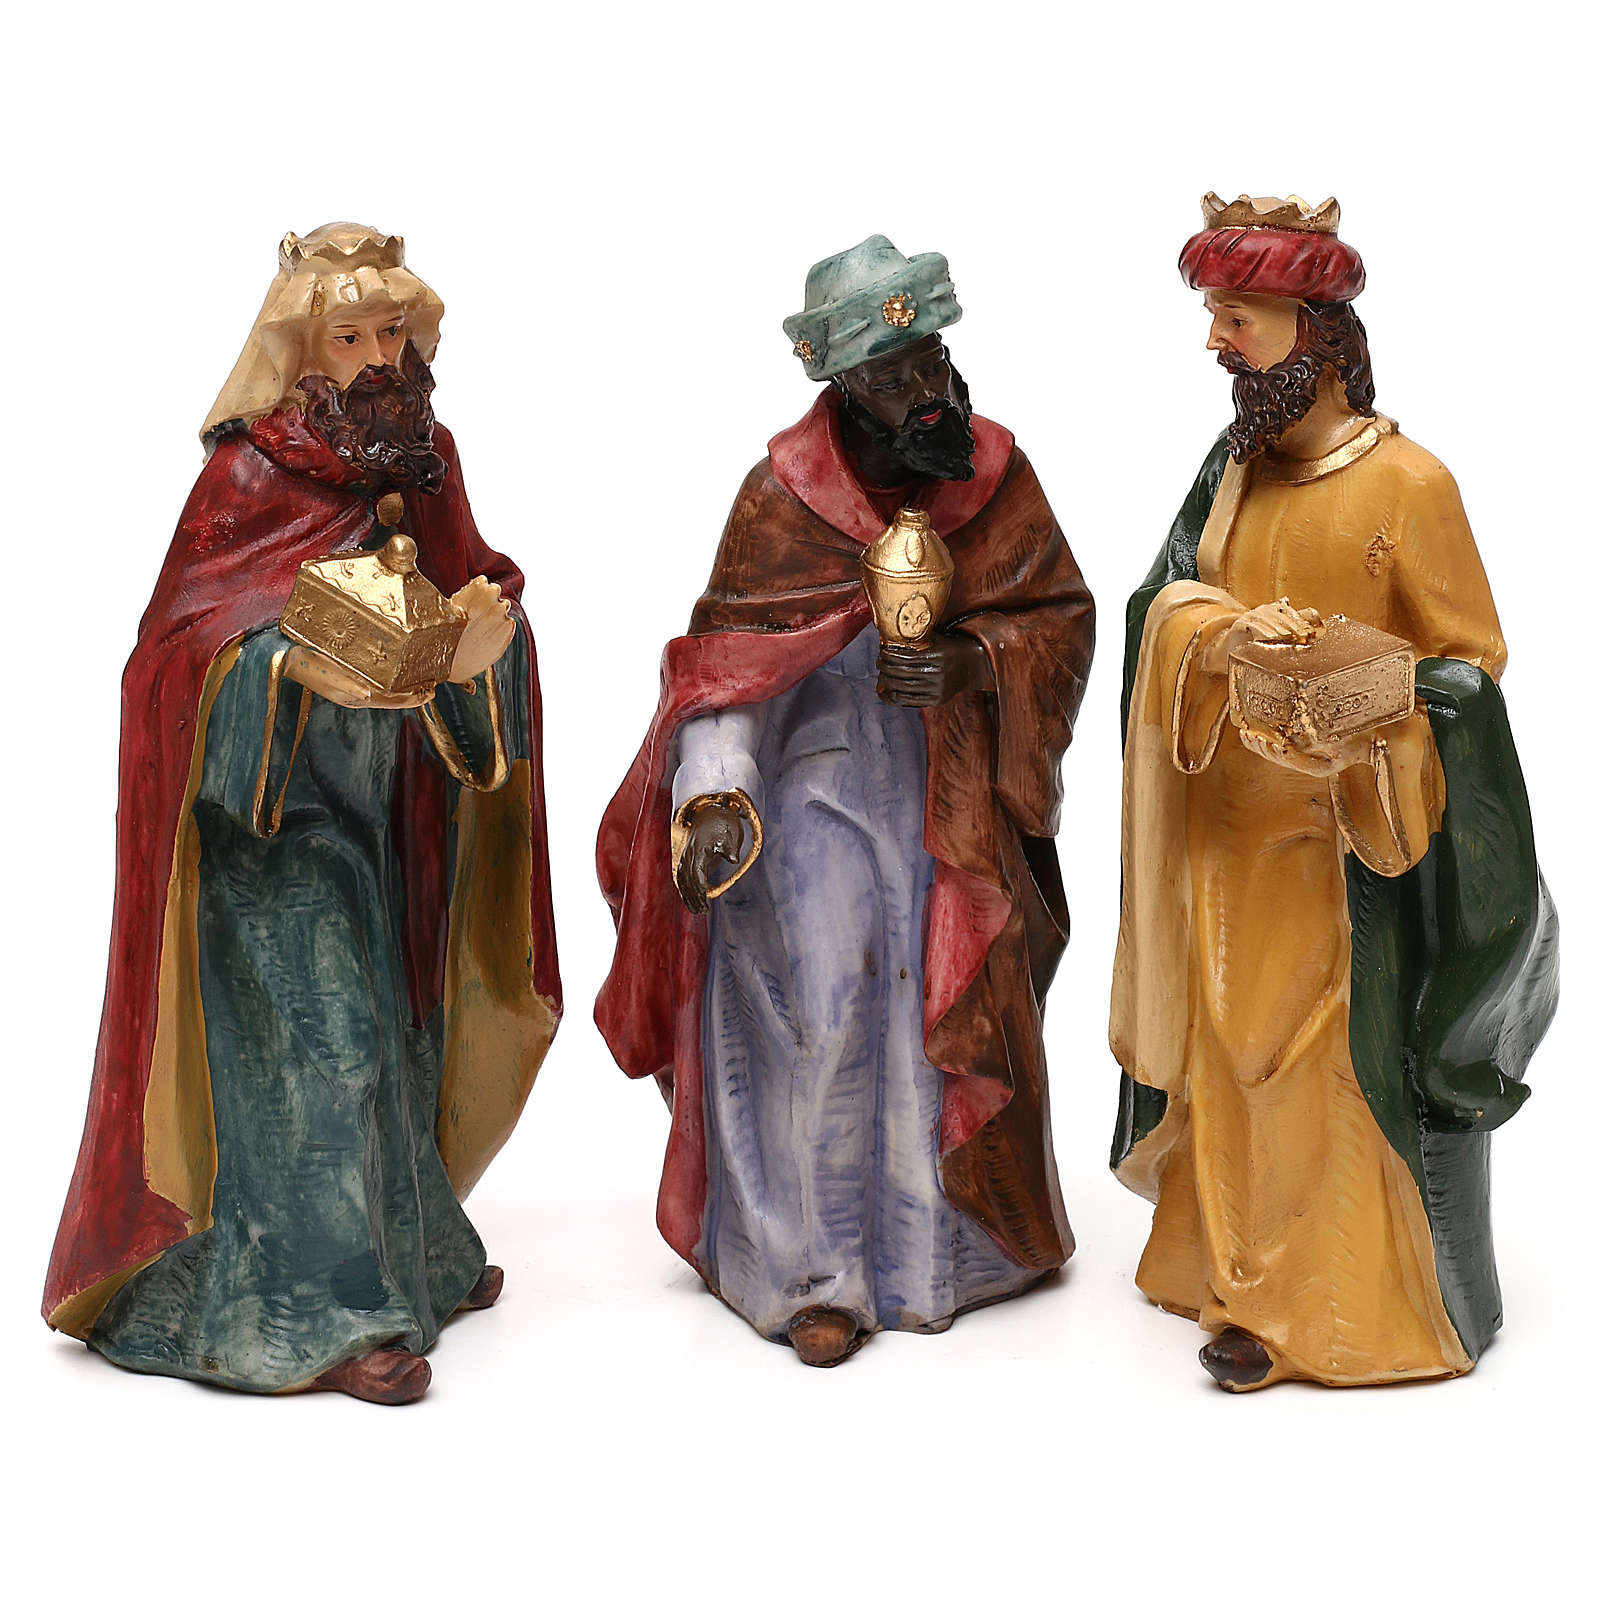 Nativity scene with 8 resin characters for Nativity scenes 18 cm 4